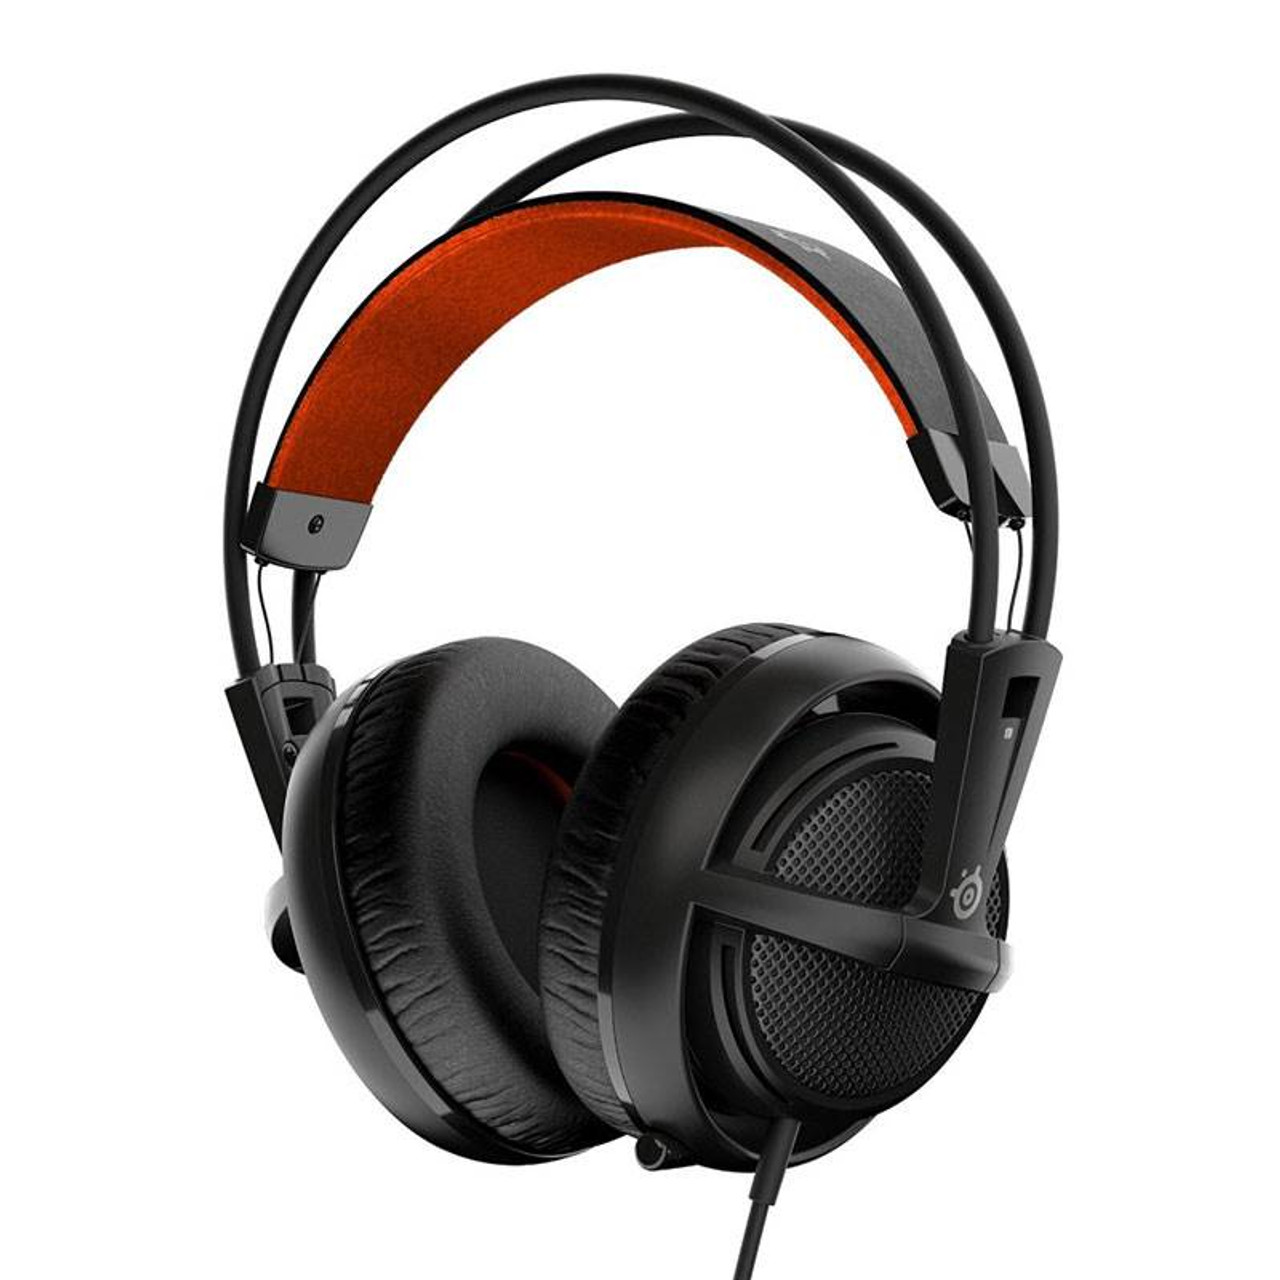 Product image for SteelSeries Siberia 200 Gaming Headset Black | CX Computer Superstore